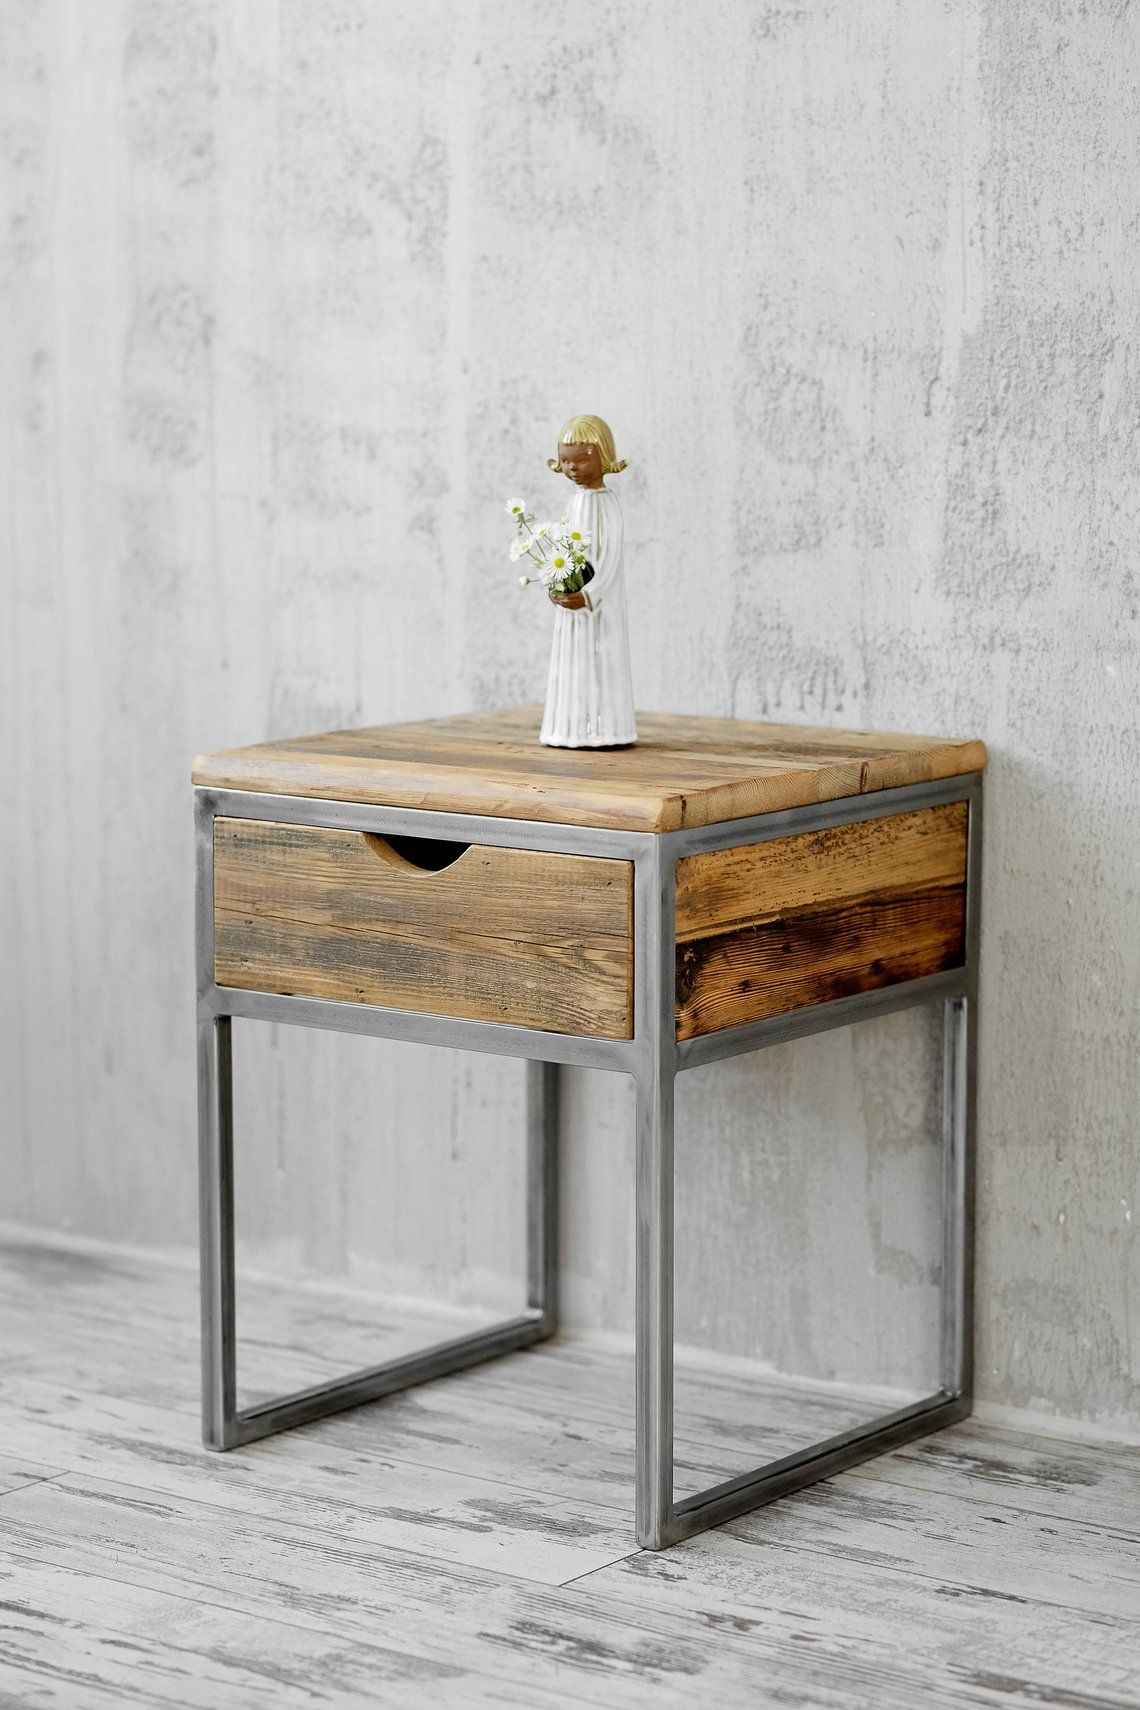 Wood And Metal Bedside Table: Industrial Bedside Table, Wood And Steel Nightstand